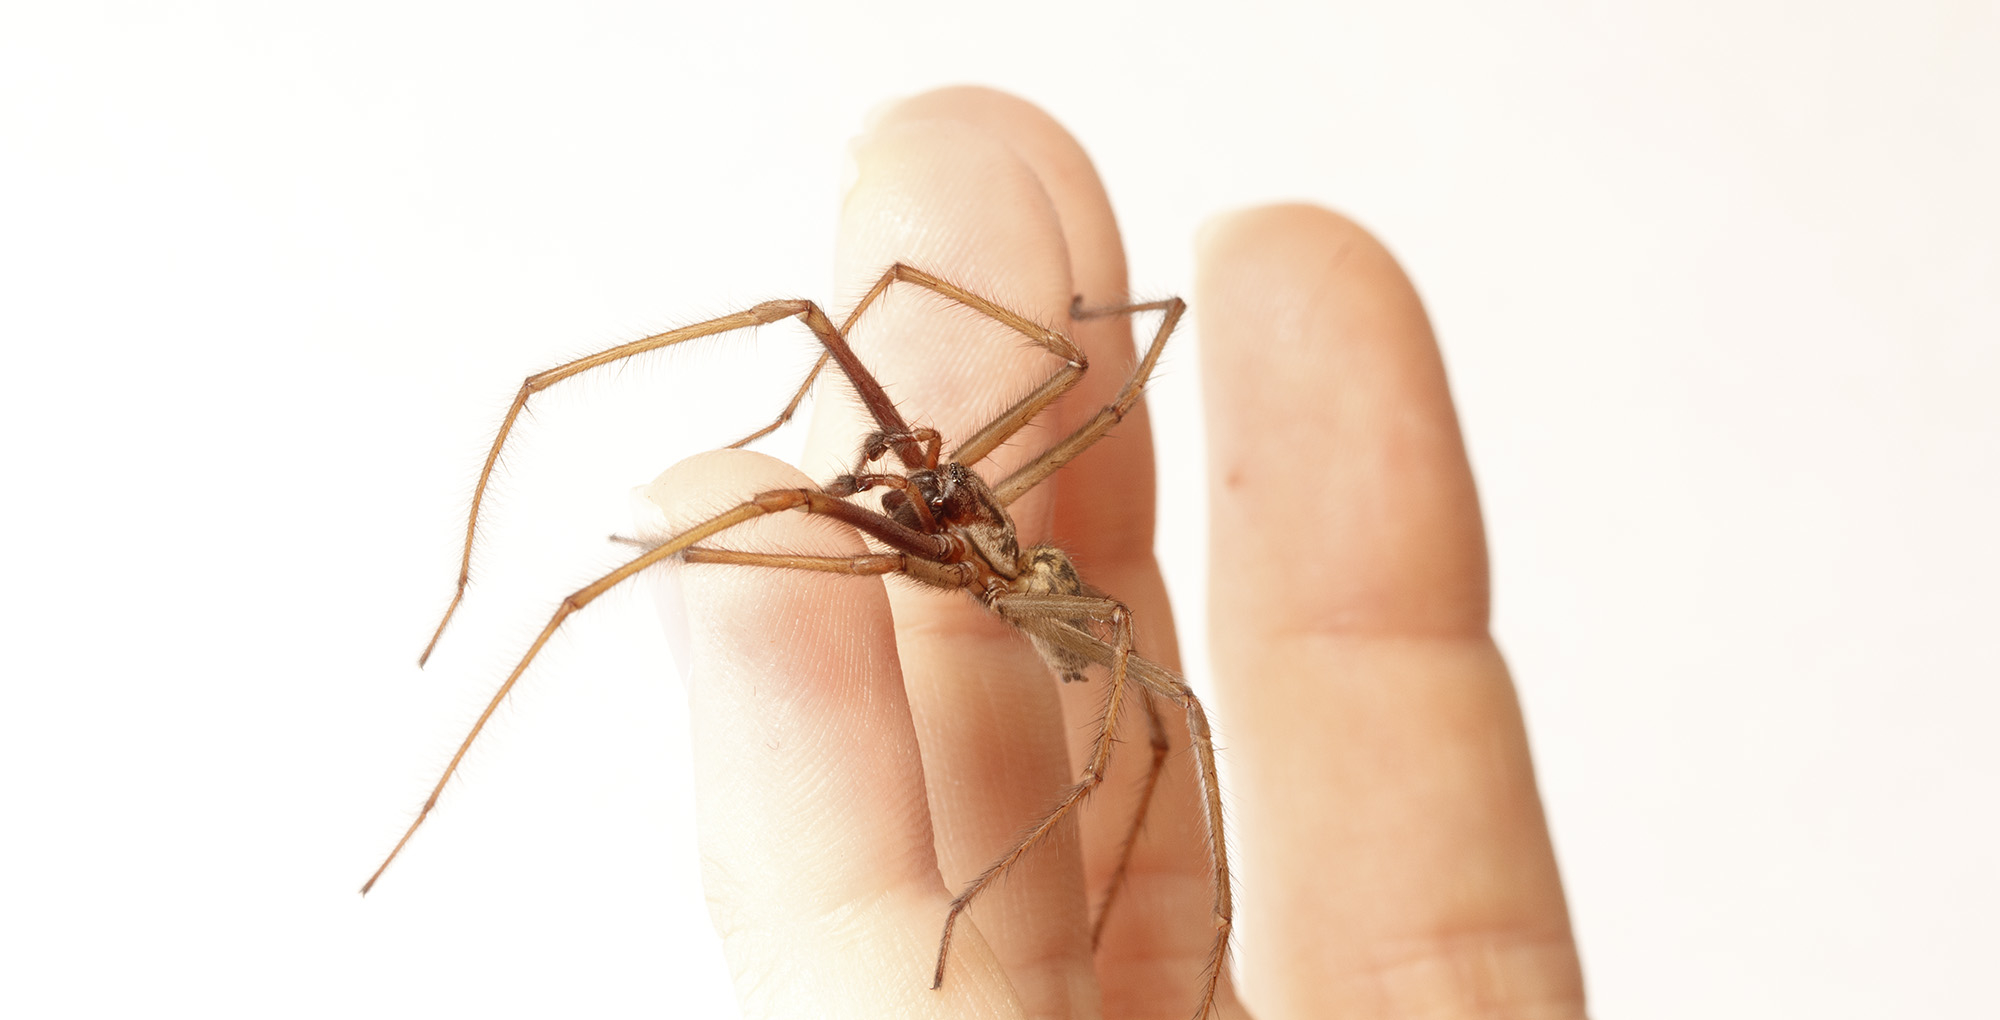 giant_house_spider_hand_large